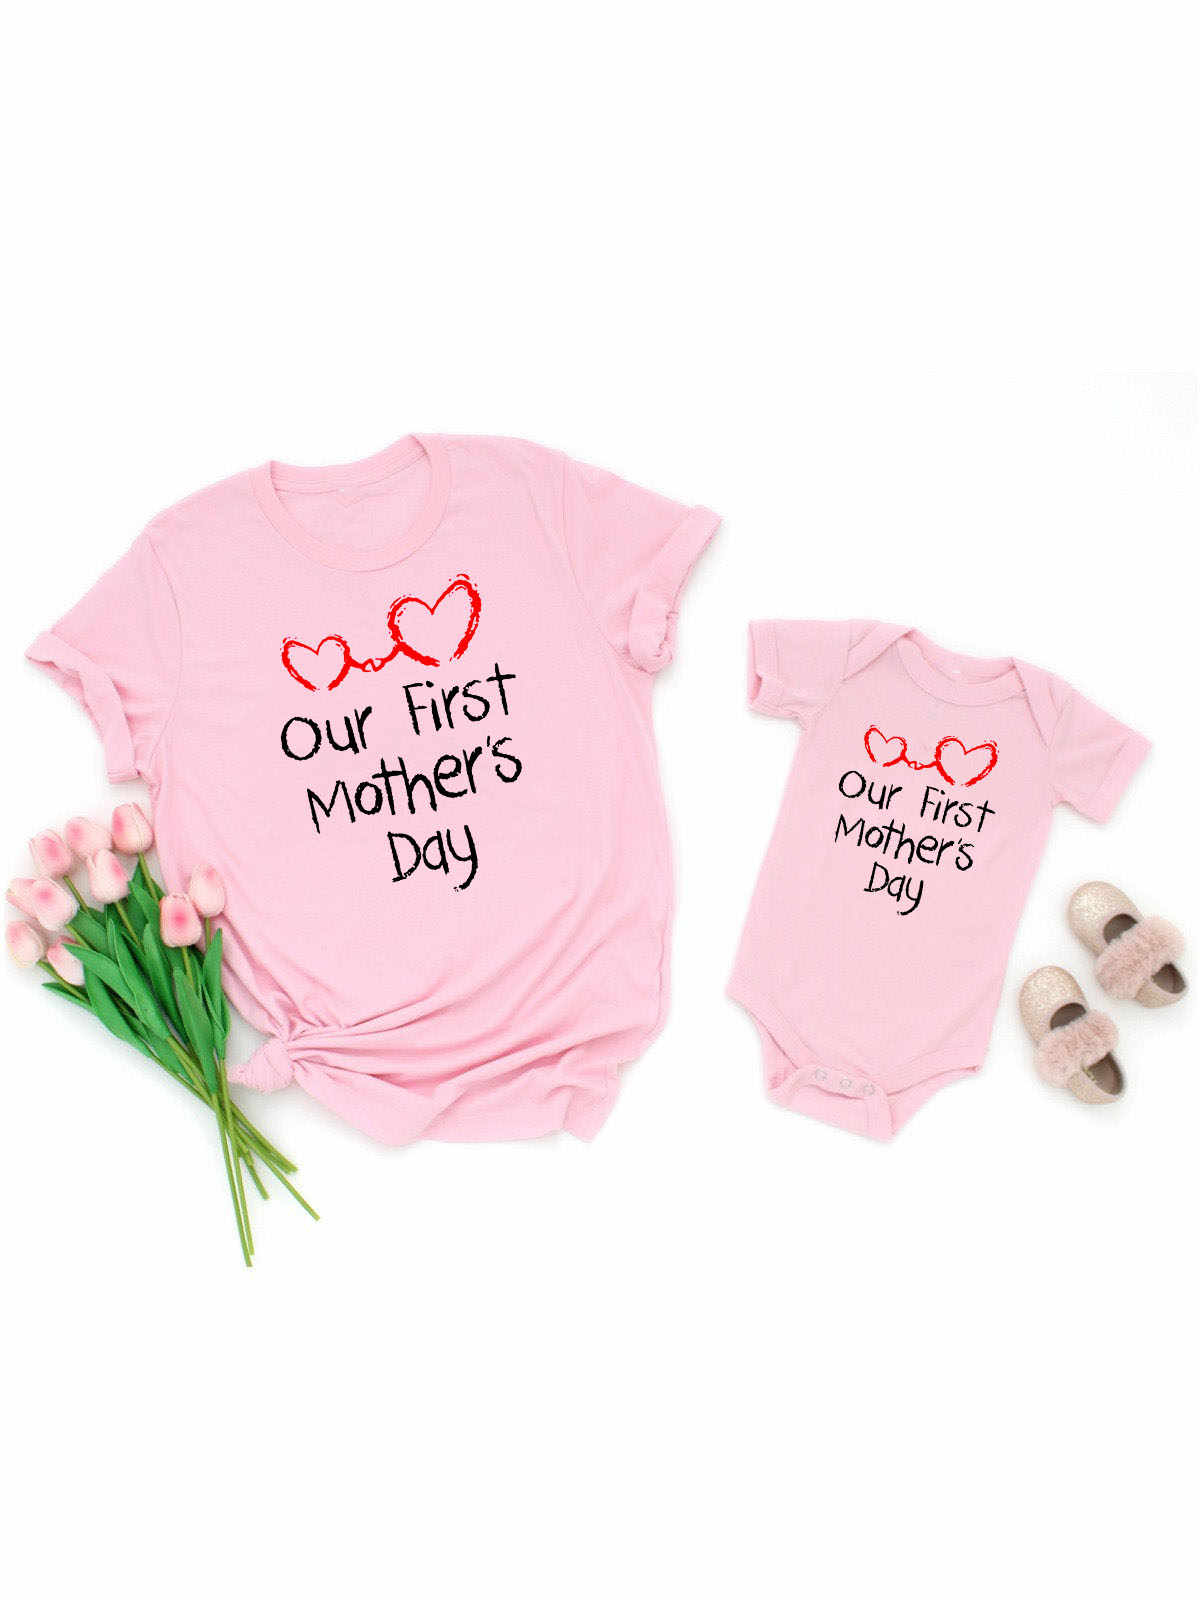 Unsere Erste Mutter der Tag tops Mom & Baby Passende tees Body & Frauen Shirt kurzarm familie passenden outfits